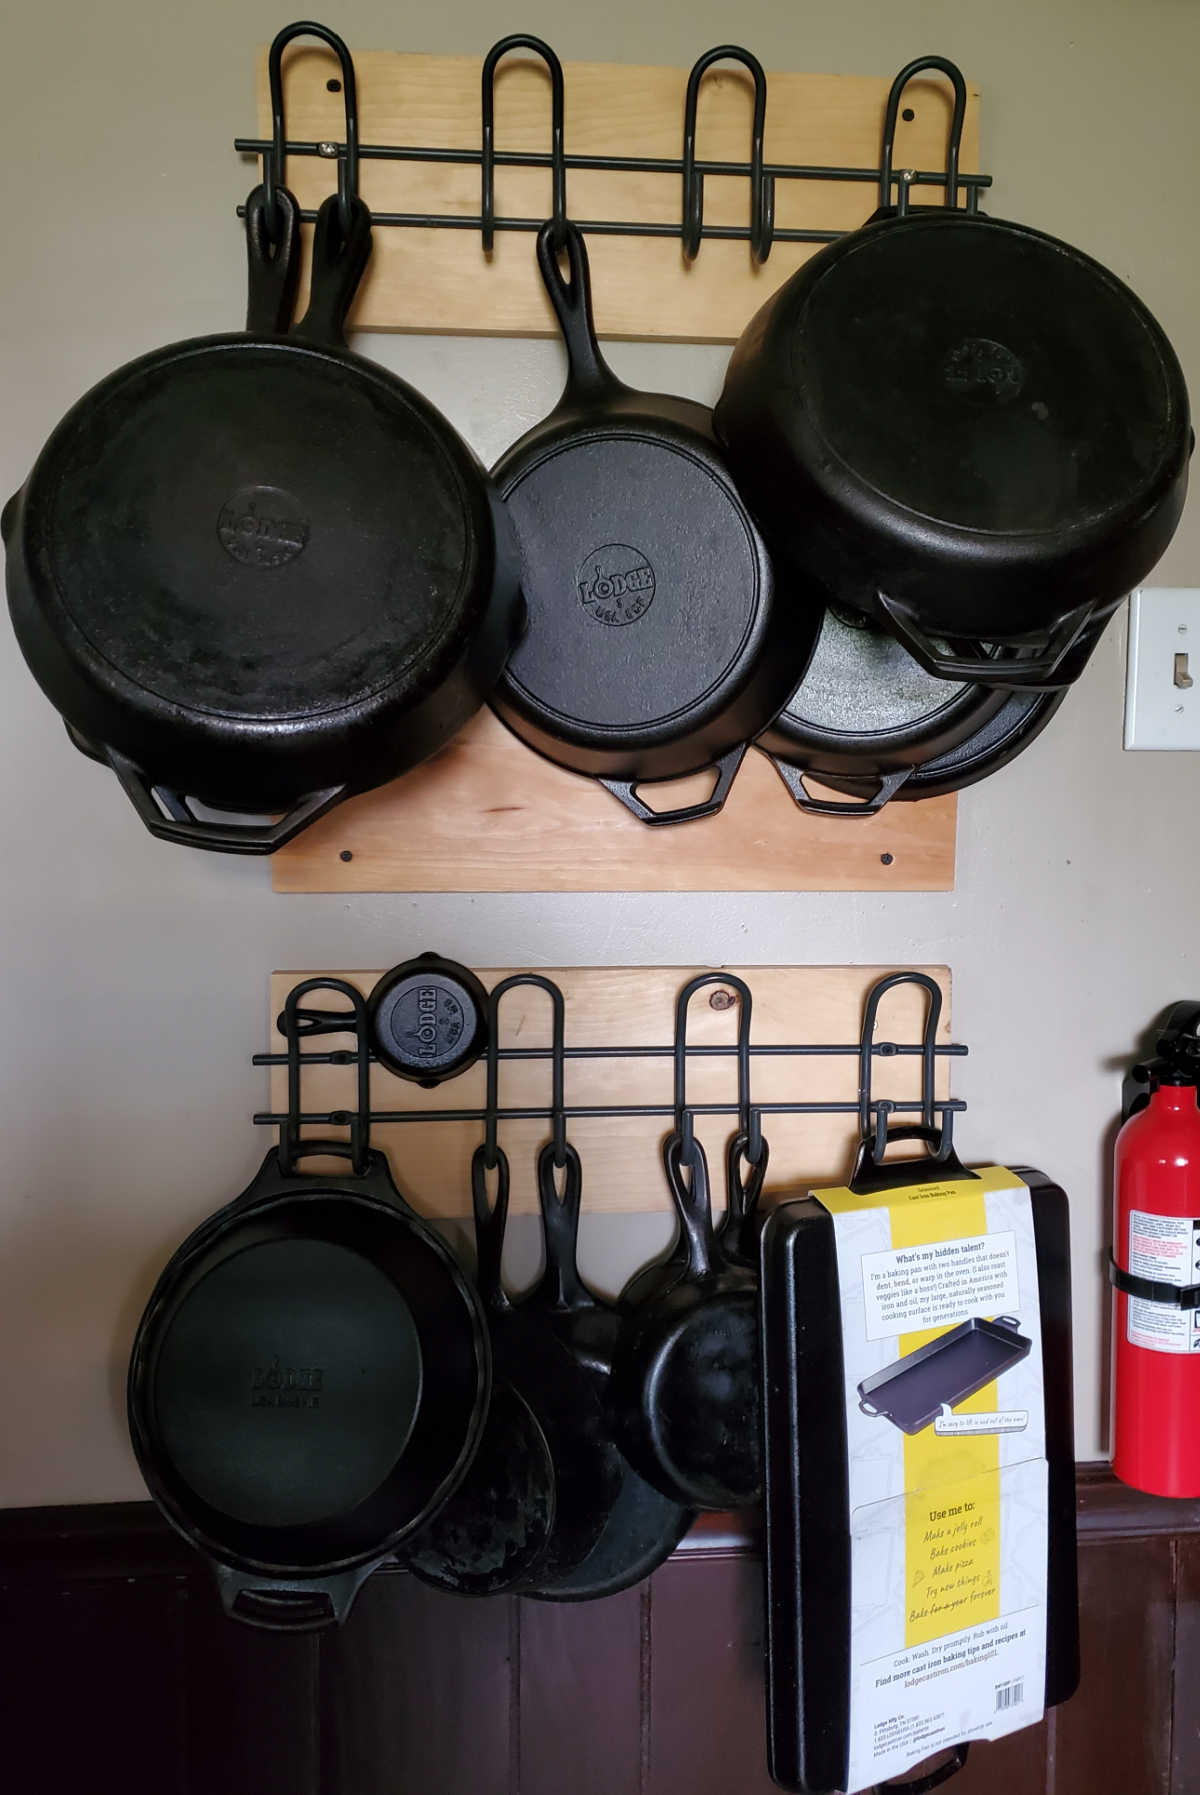 Cast iron skillets hung on metal hooks on kitchen wall.